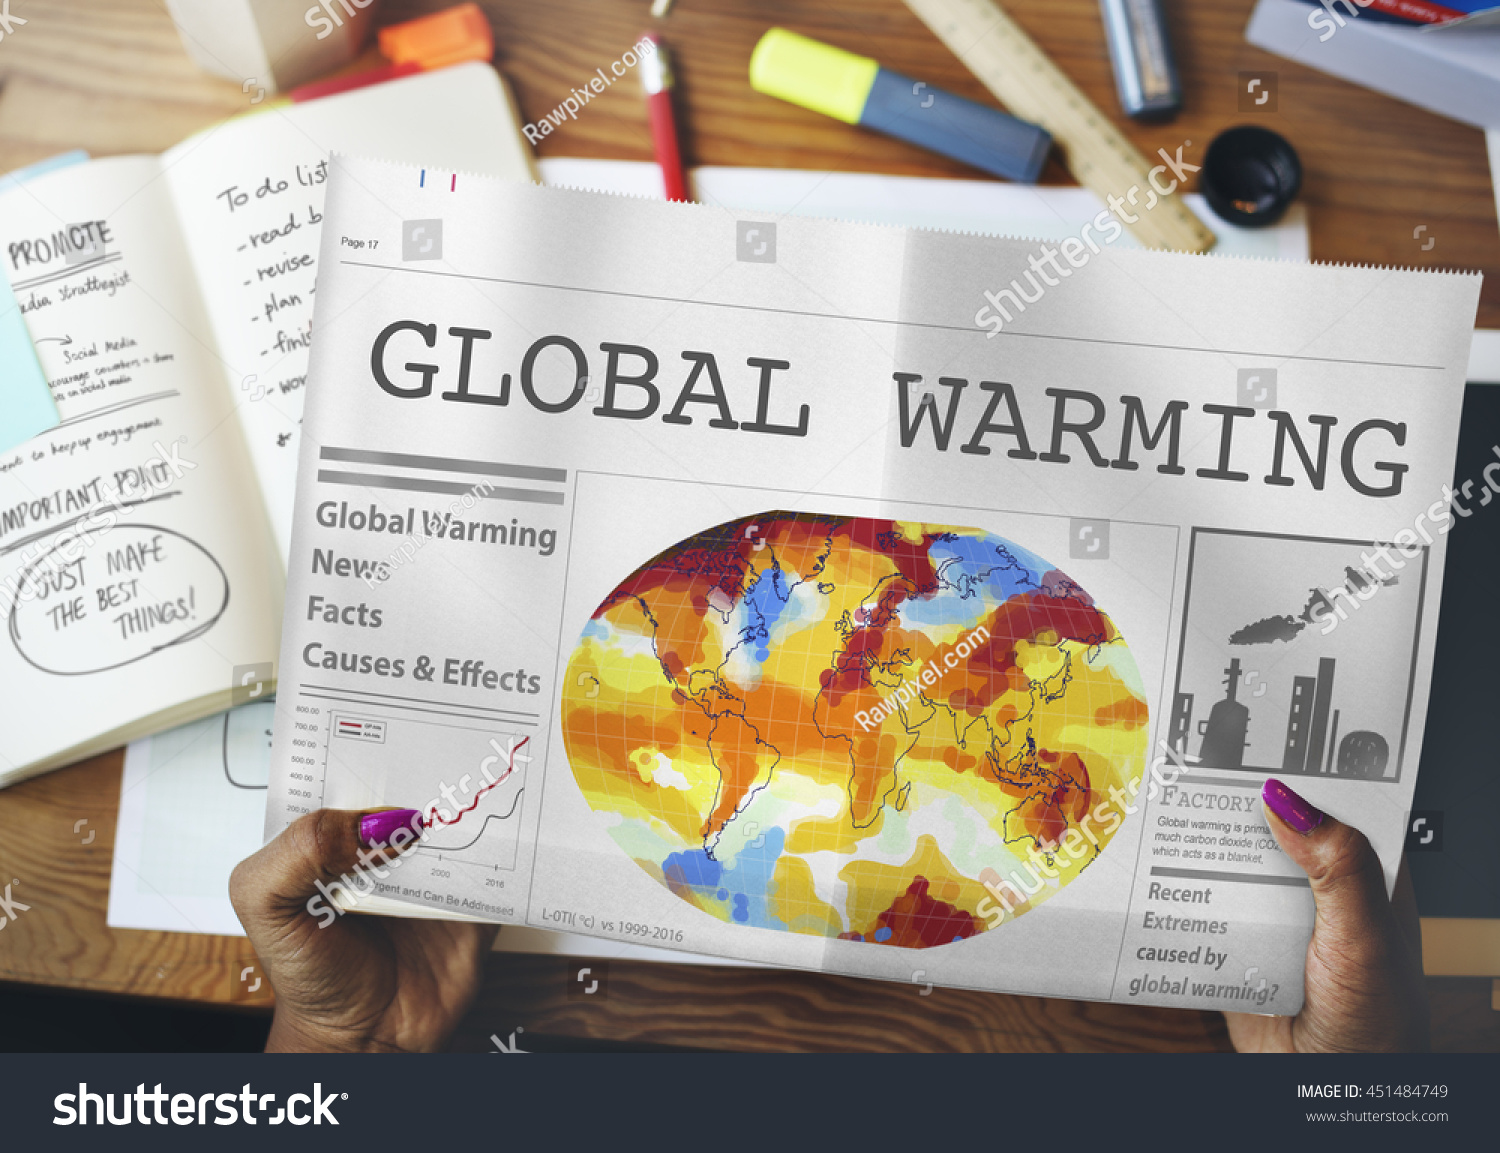 effects of global warming term papers Effects of global warming research papers discuss the harmful effects global warming will cause to the environment and the human existence.